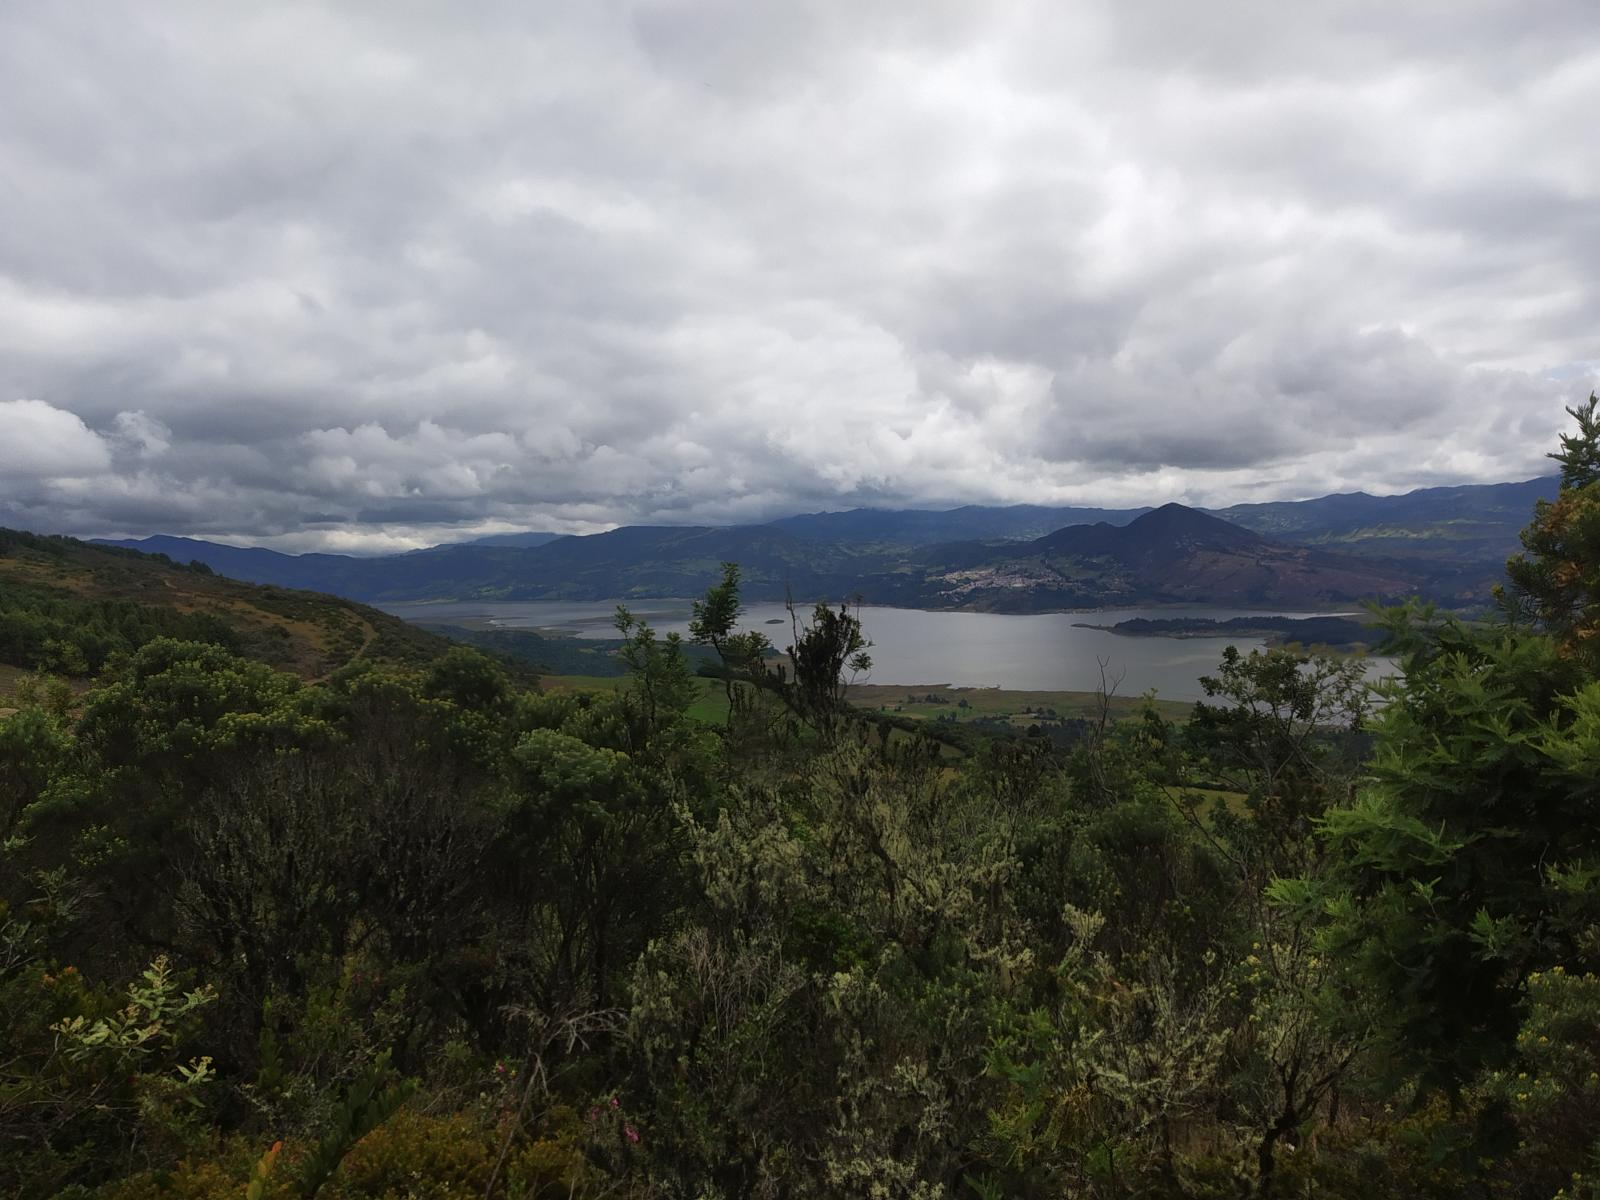 Embalse del Tominé